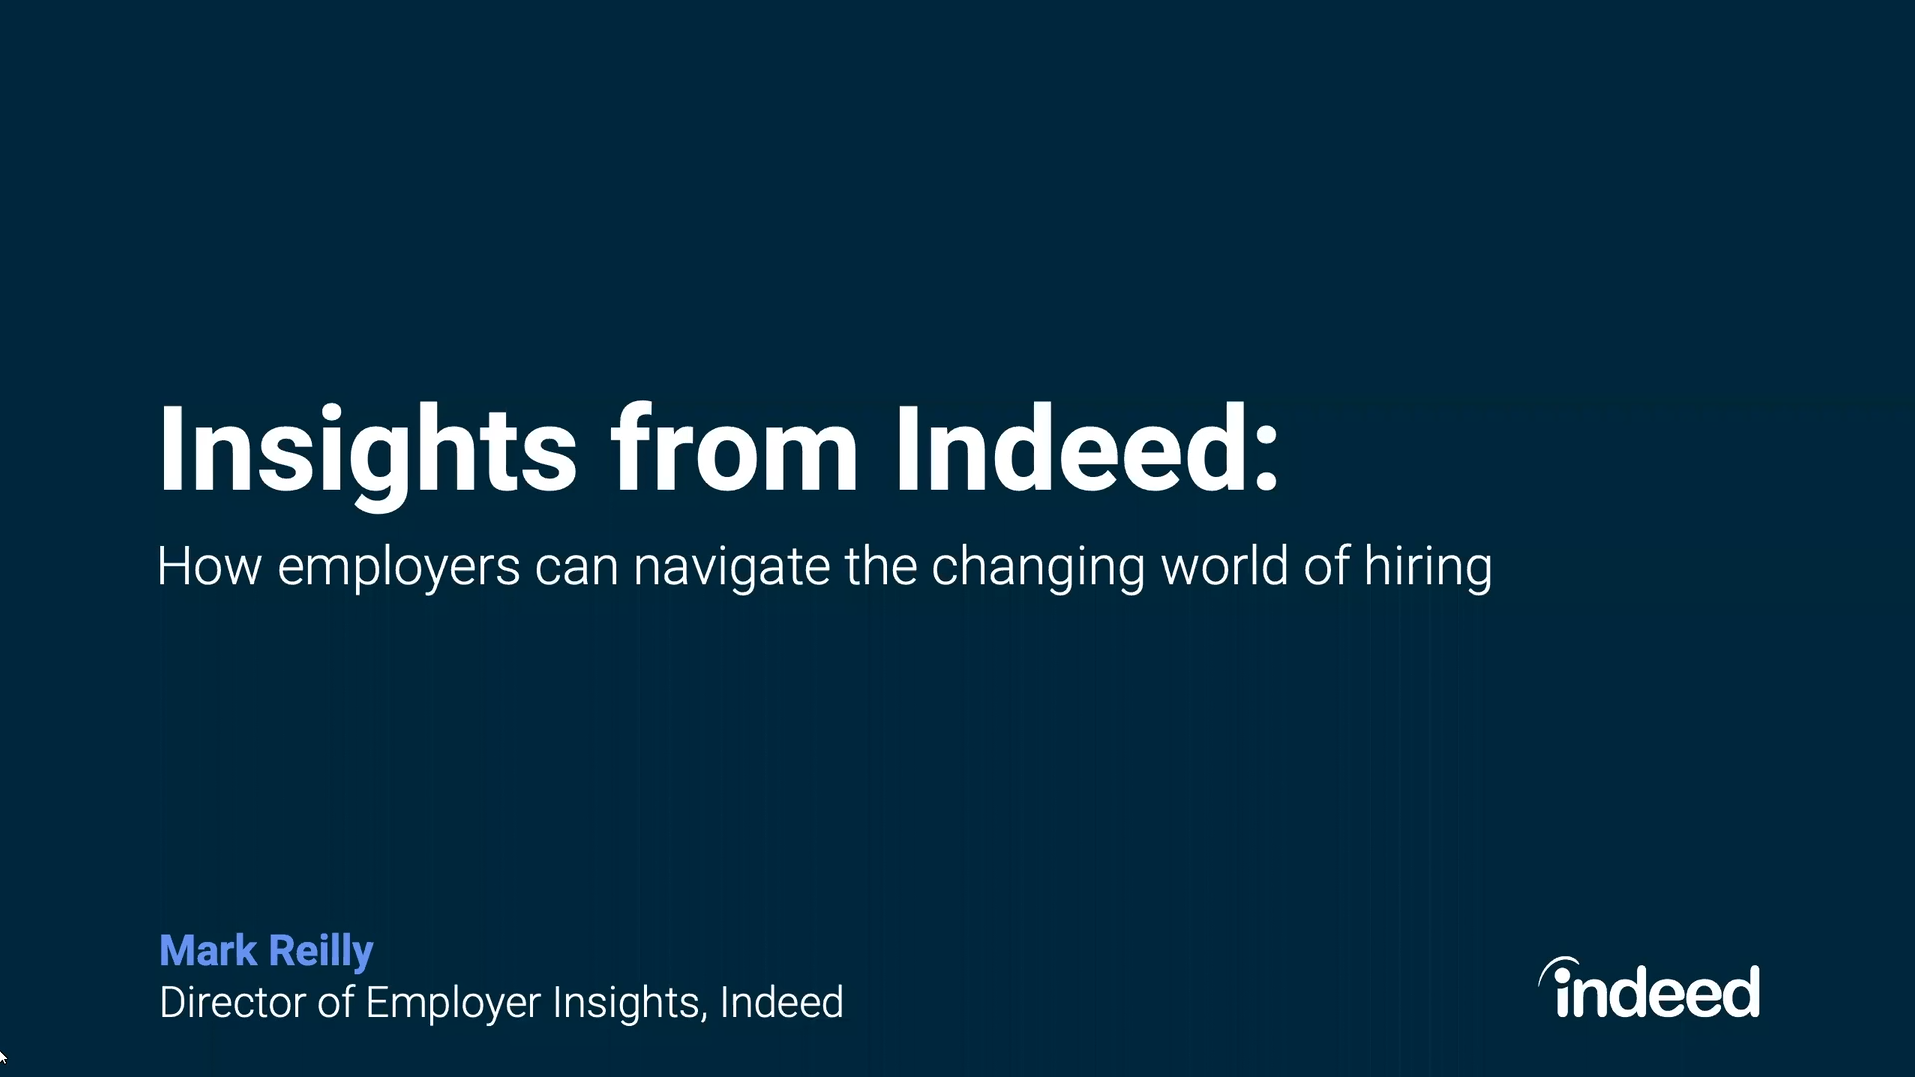 How employers can navigate the changing world of hiring